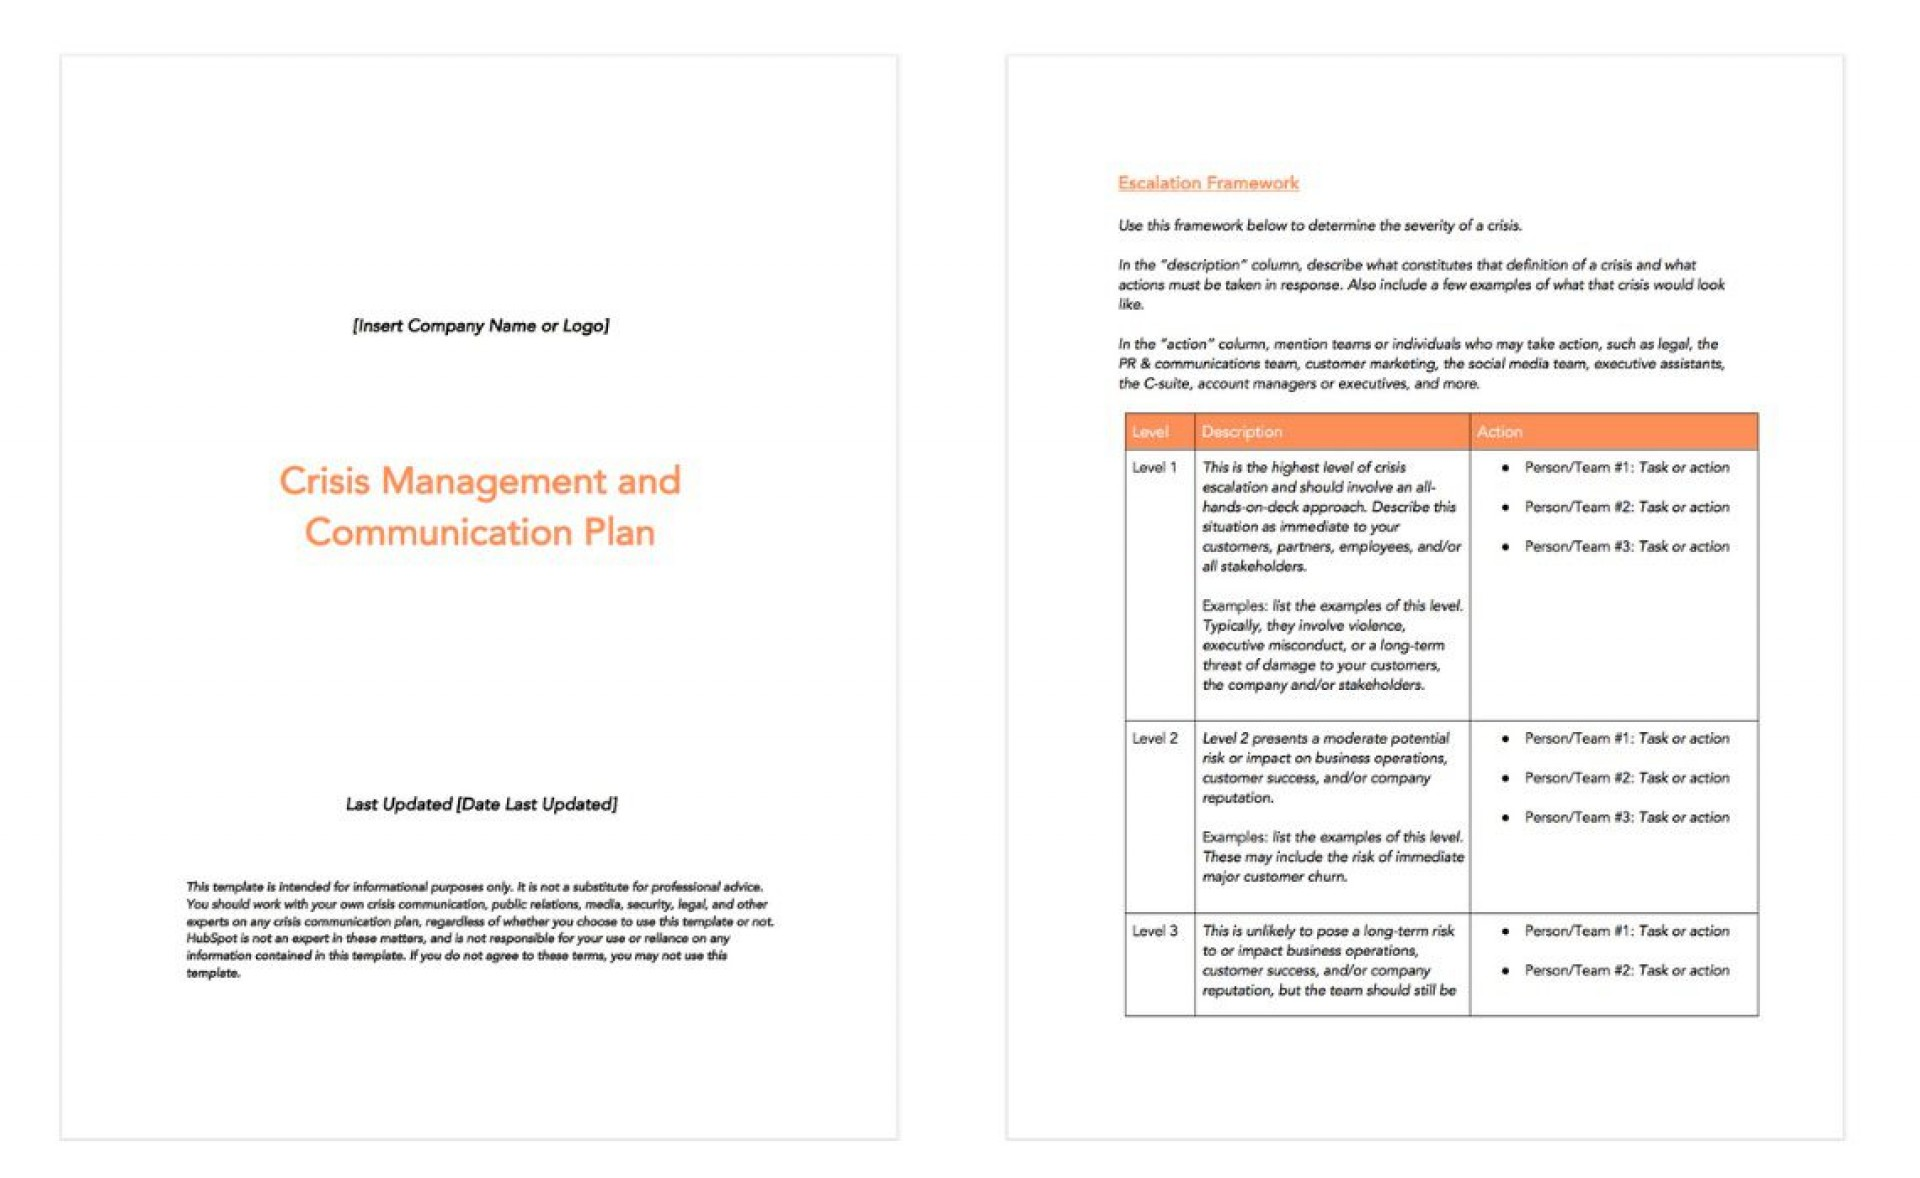 009 Incredible Crisi Communication Plan Template Example  For Higher Education Nonprofit1920